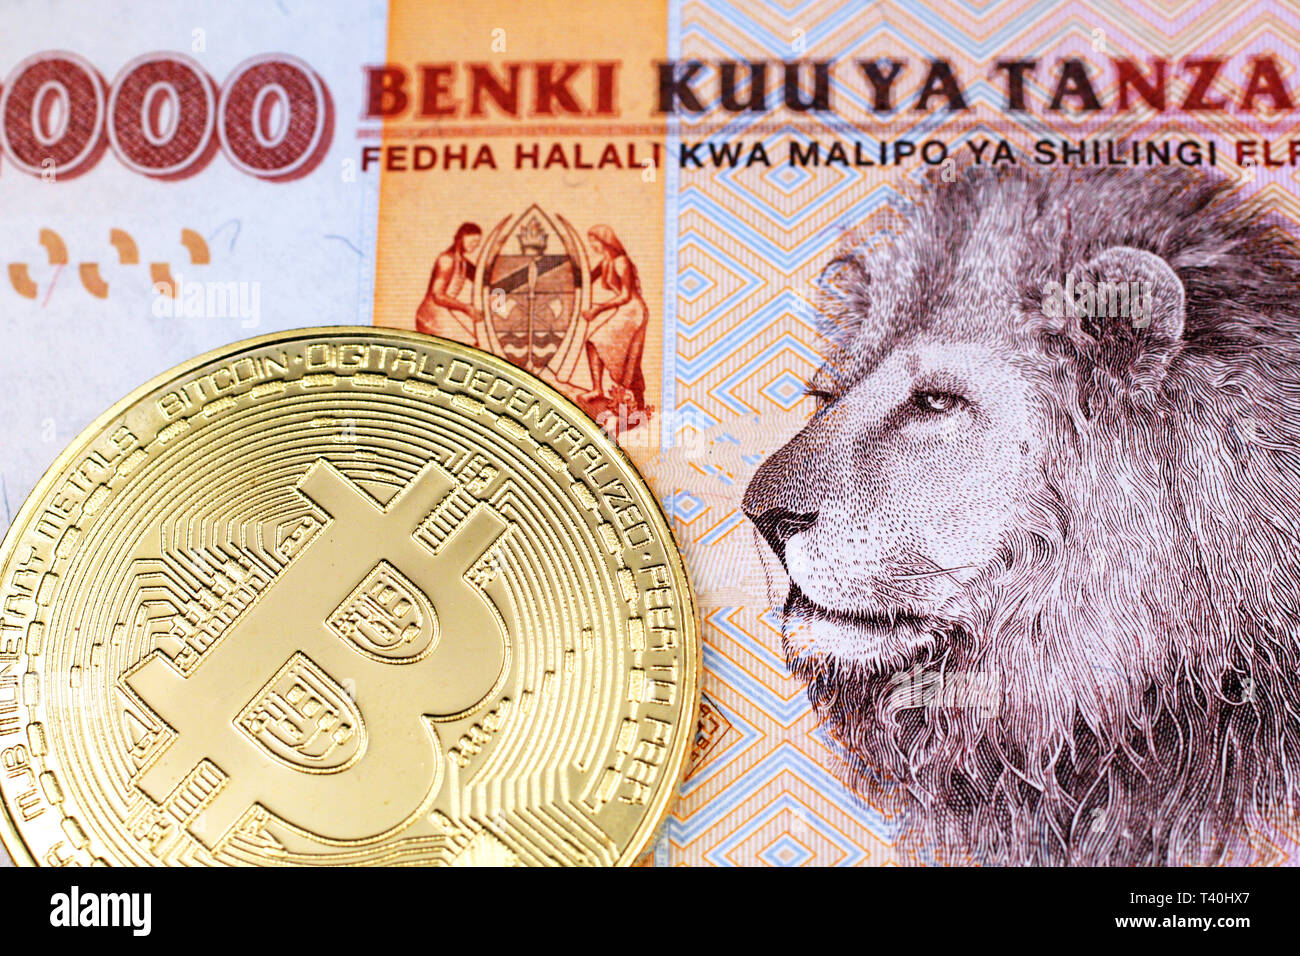 A close up image of an orange, Tanzanian two thousand shilling note with a shiny, gold physical bitcoin in macro - Stock Image